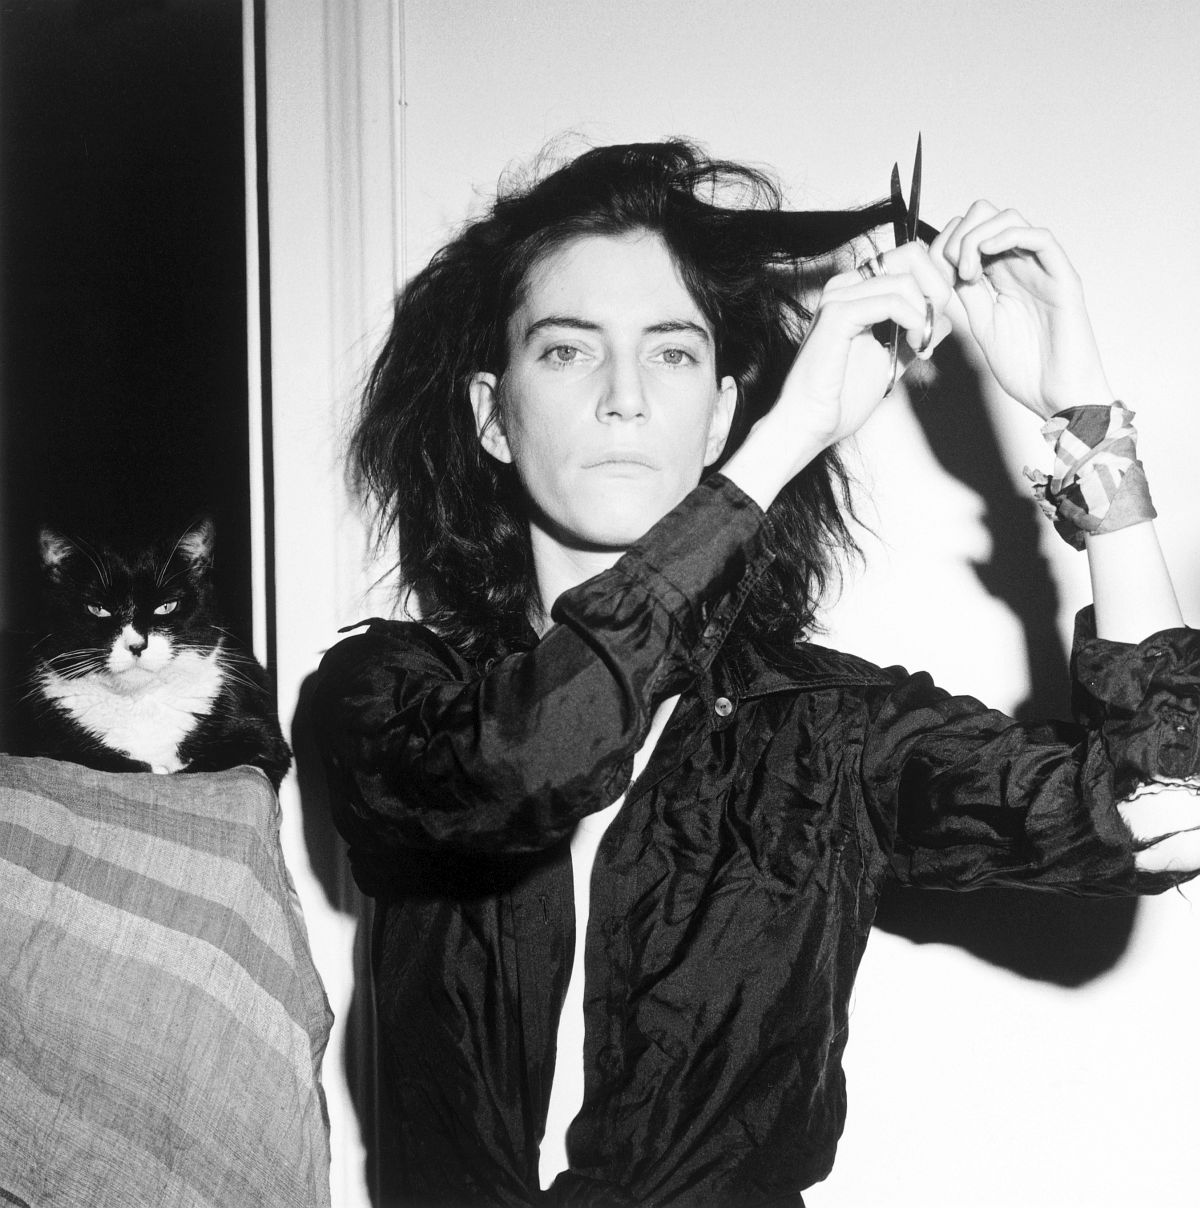 Patti Smith,1978 © Robert Mapplethorpe Foundation. Used by permission